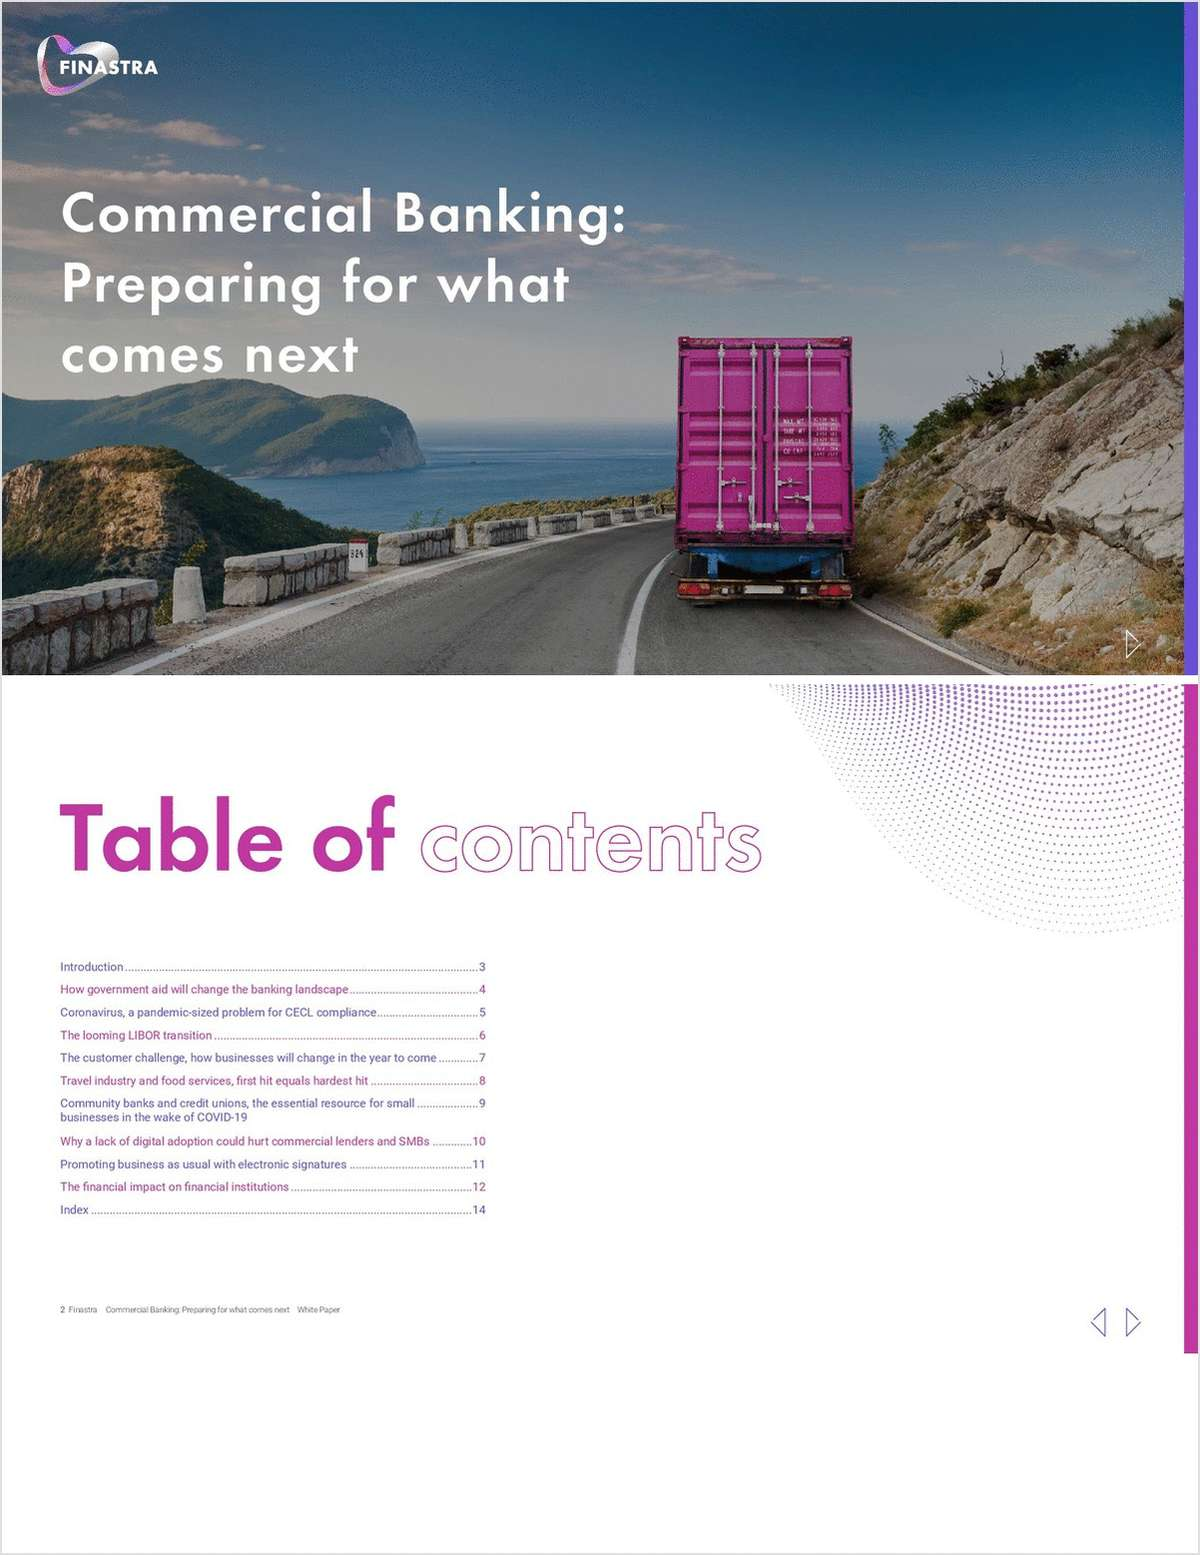 Commercial Banking: Preparing for What Comes Next